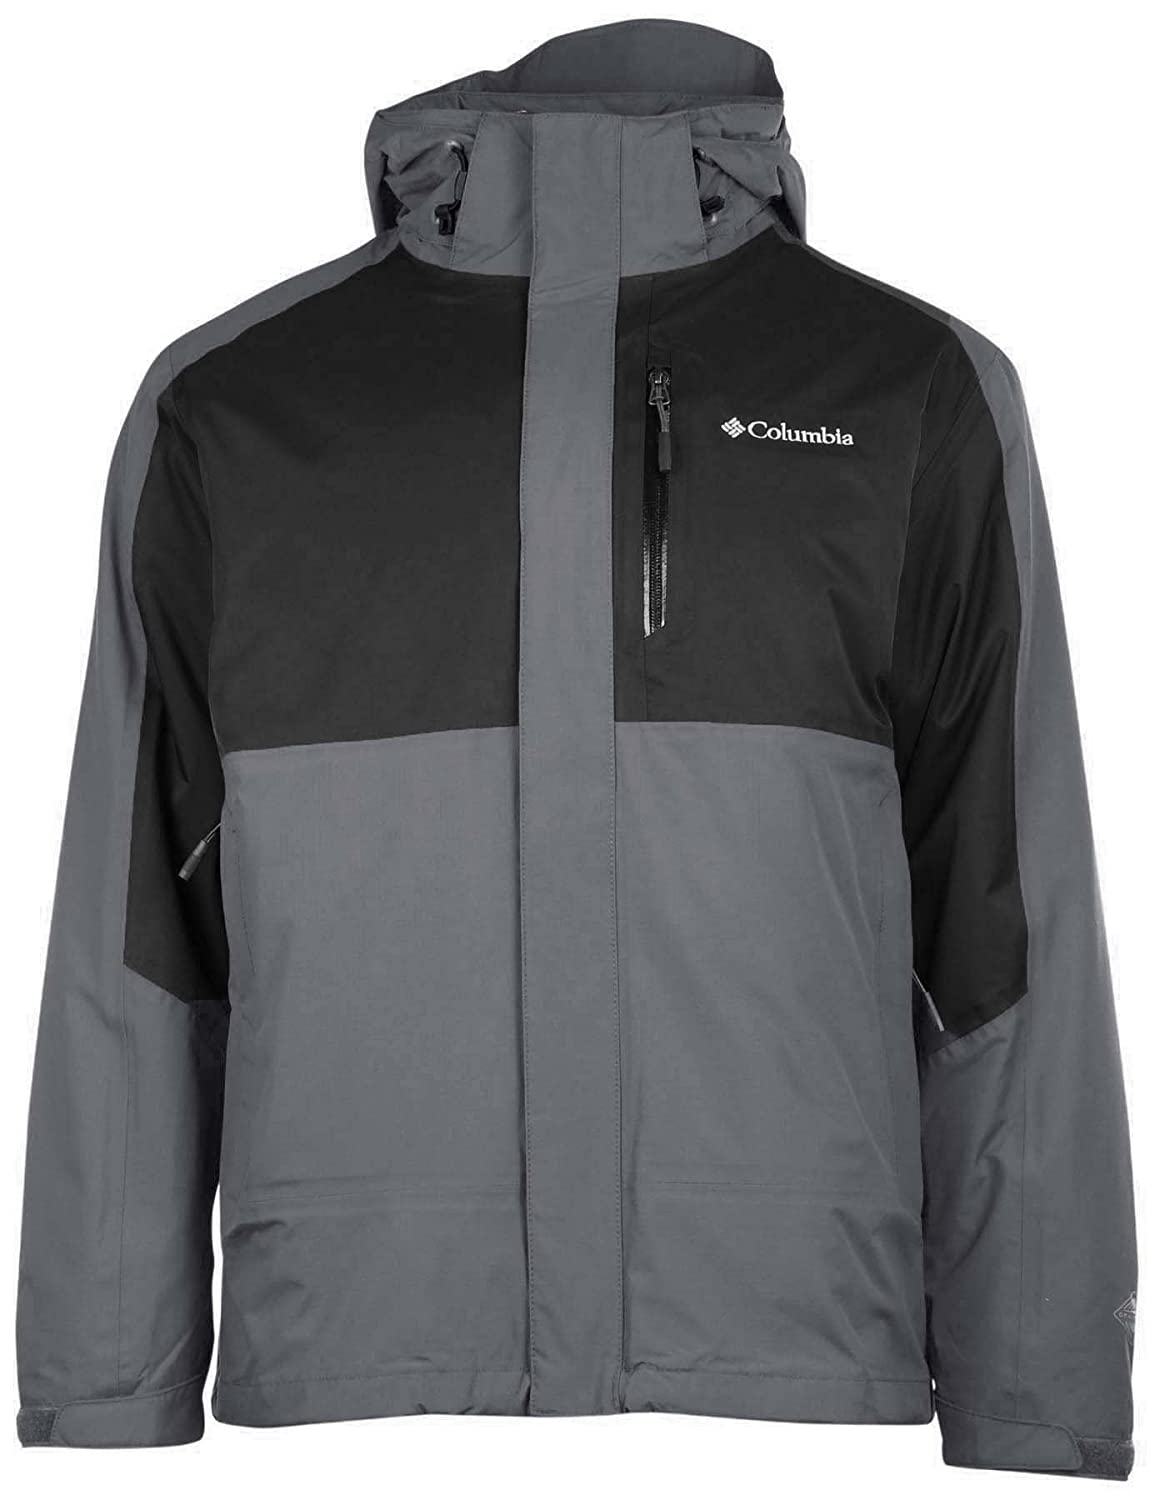 (コロンビア) Columbia Rural Mountain 3イン1交換可能オムニヒートジャケット メンズ B01MTUQK5L S|Gray/Black Colorblock Gray/Black Colorblock S